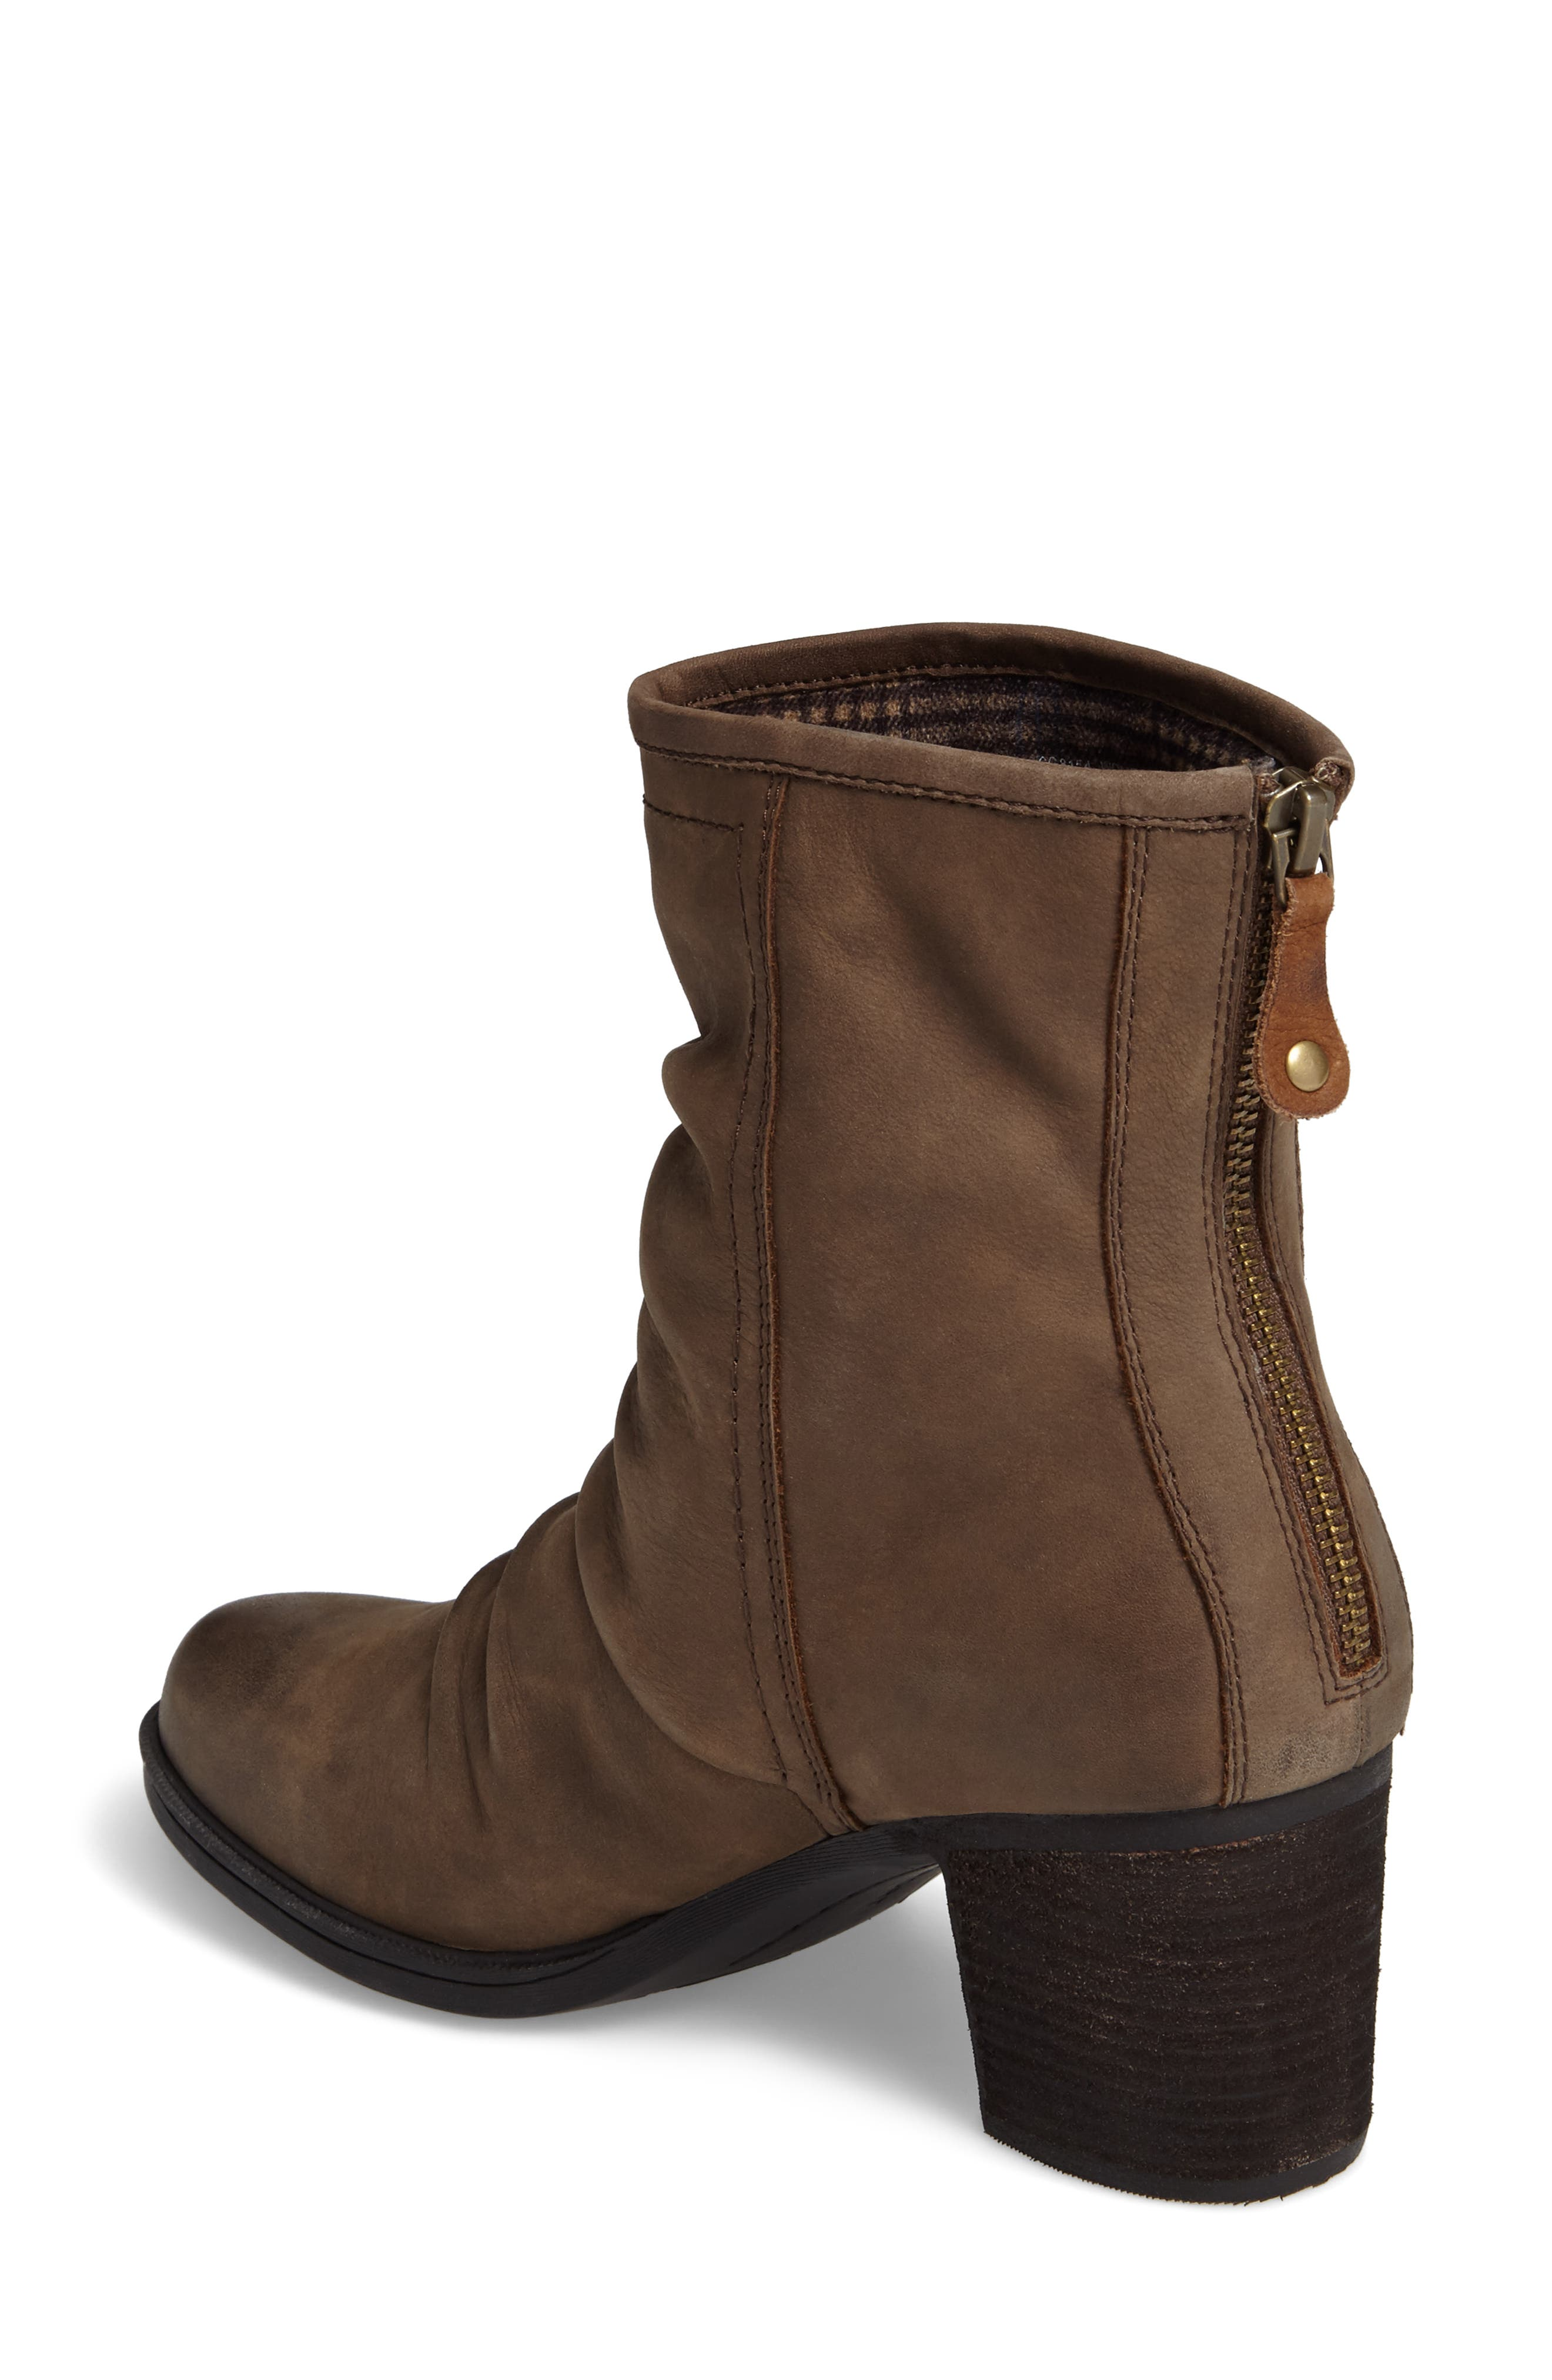 Alternate Image 2  - Rockport Cobb Hill Natashya Slouchy Block Heel Bootie (Women)